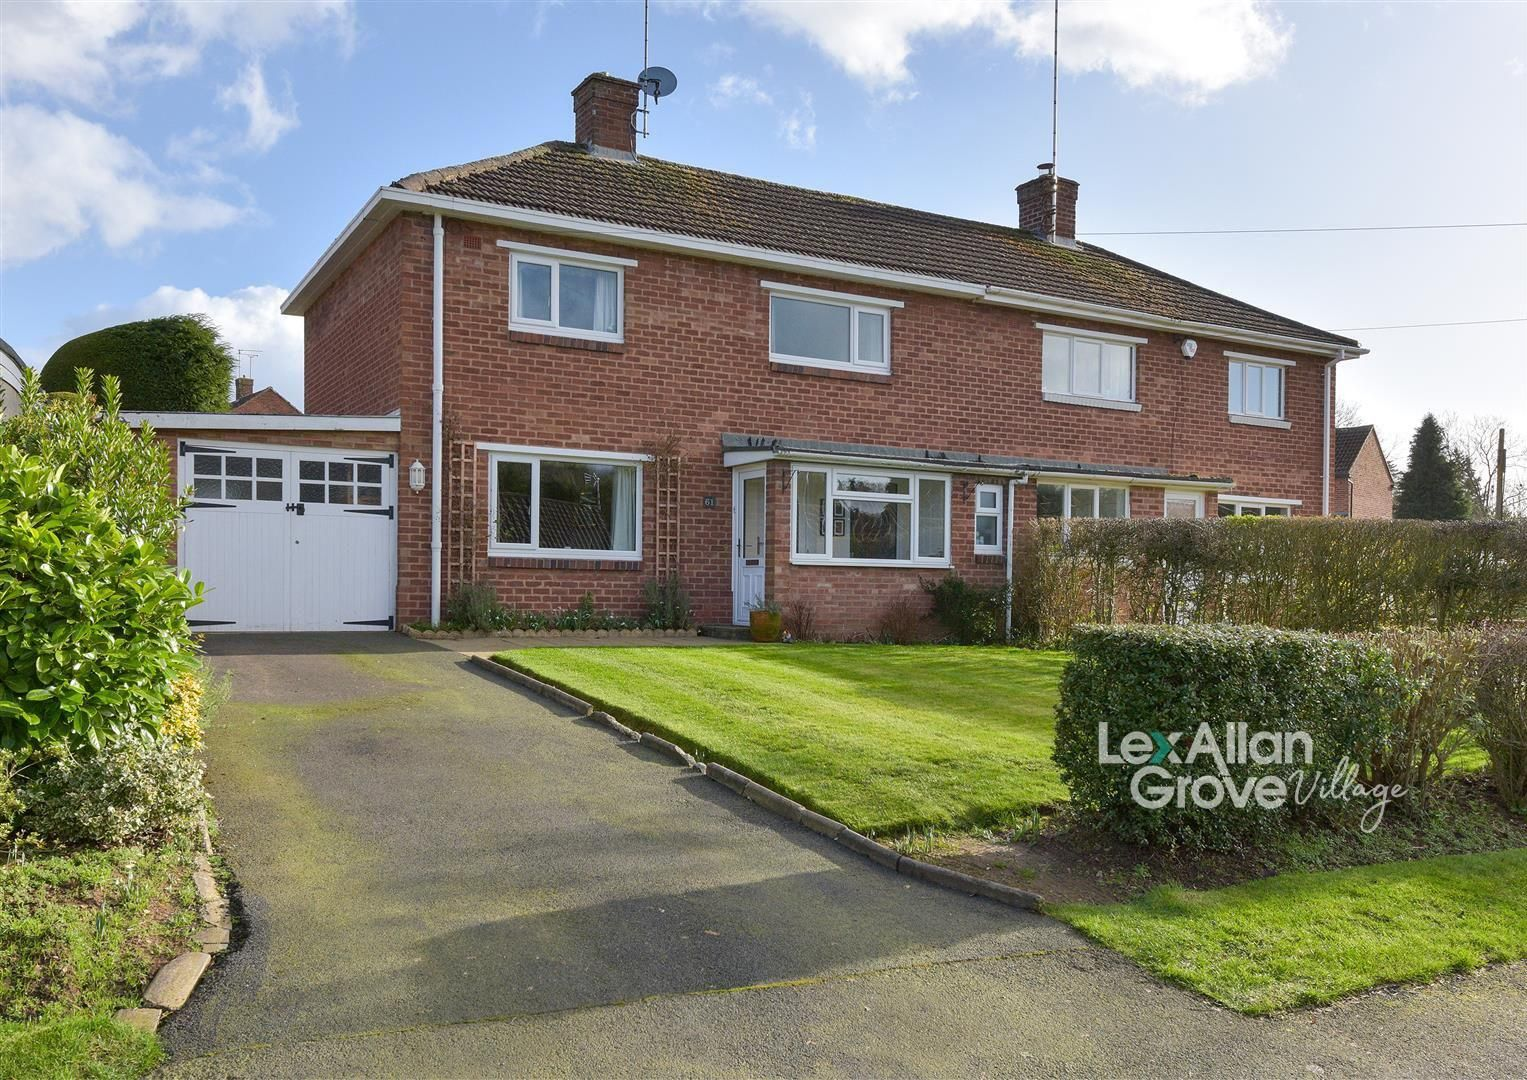 3 bed semi-detached for sale in Blakedown, DY10